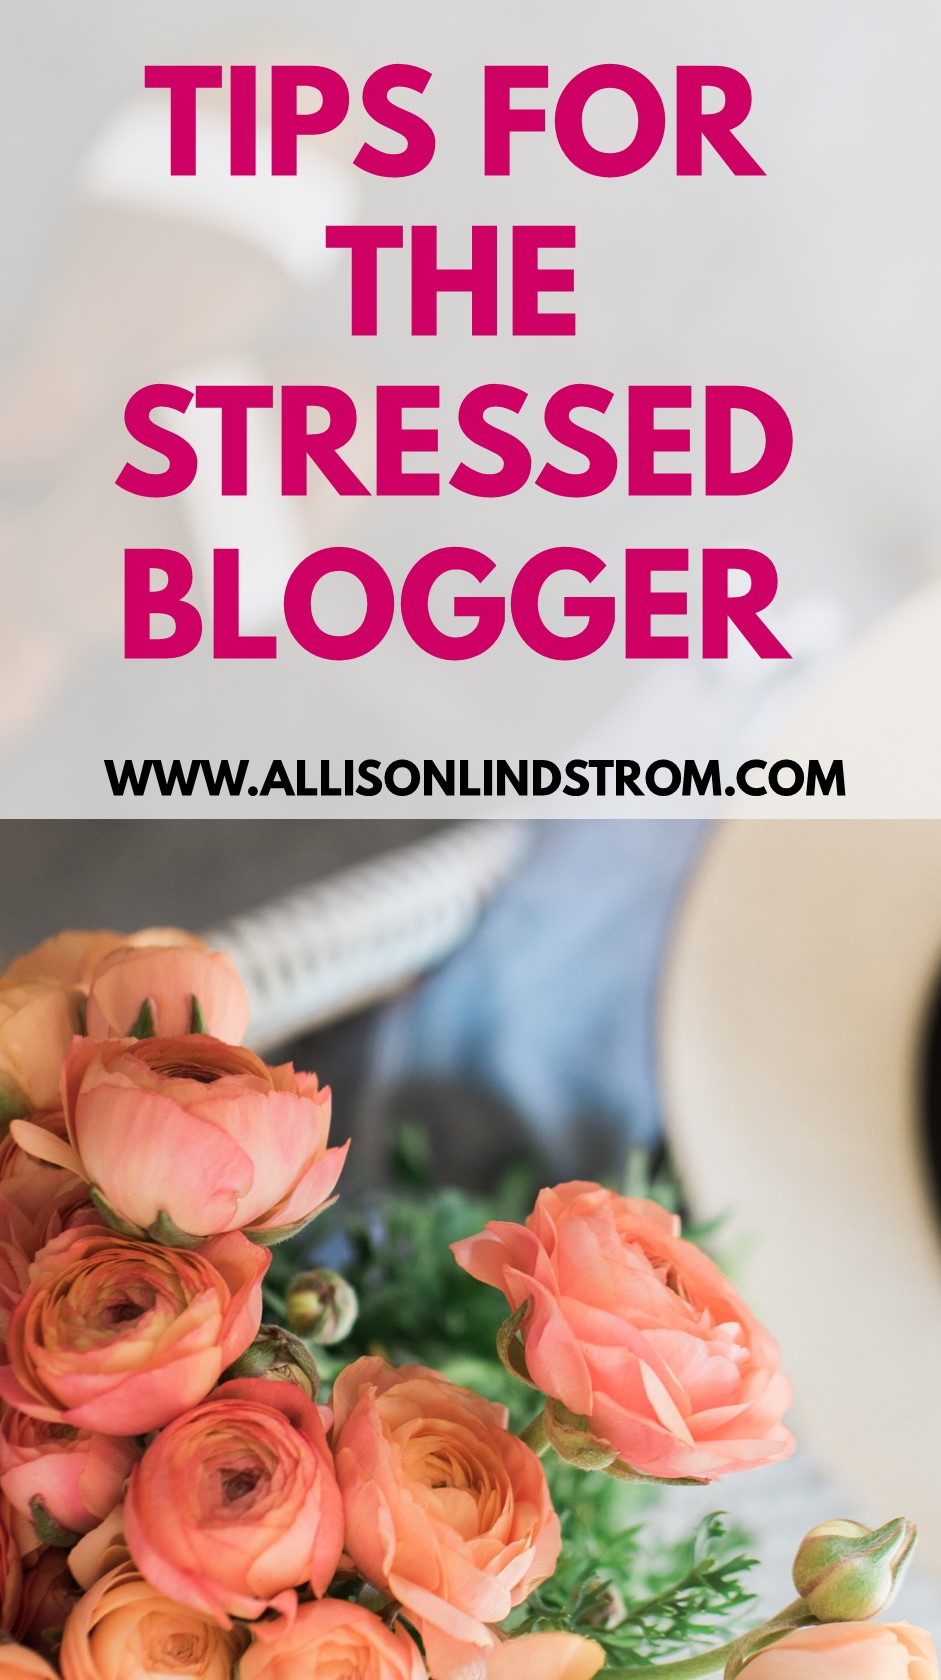 Starting a blog and taking care of it full-time isn't the easiest job in the world. And that's when life is on a normal schedule! Do you stress out during the holidays or when you get back from vacations? I've had some crazy to-do lists lately myself and have some stress management tips to share.